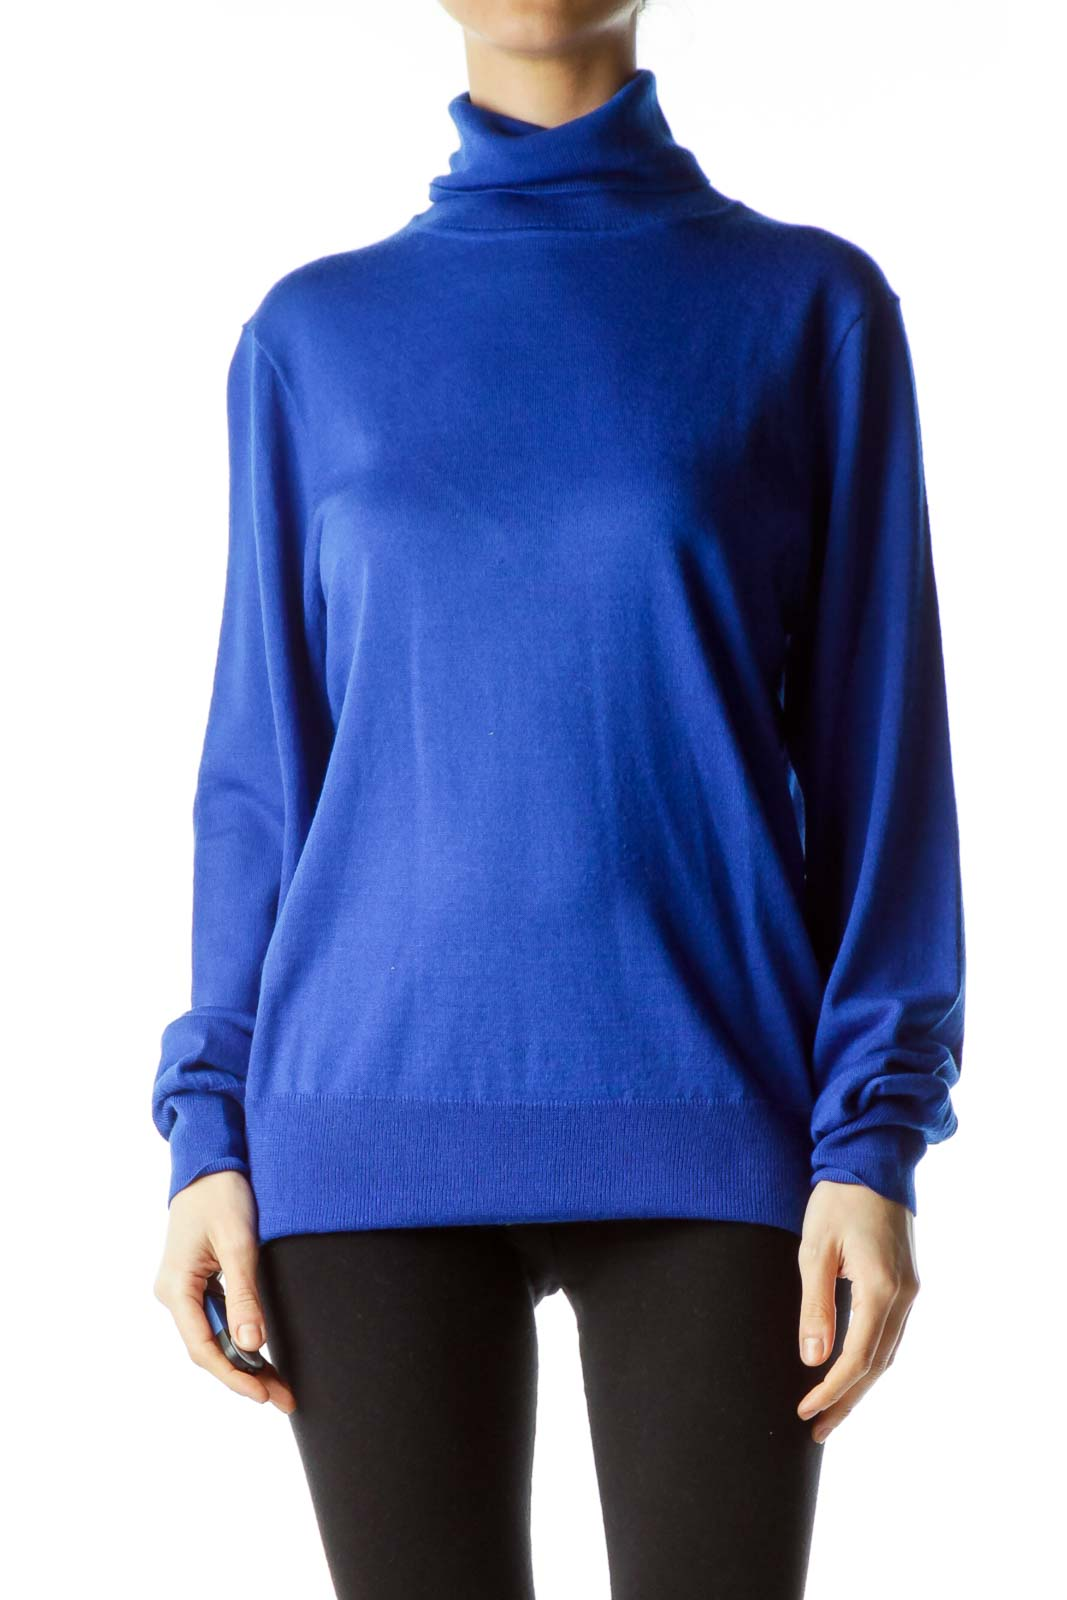 Blue Merino Wool Turtle Neck Knit Sweater